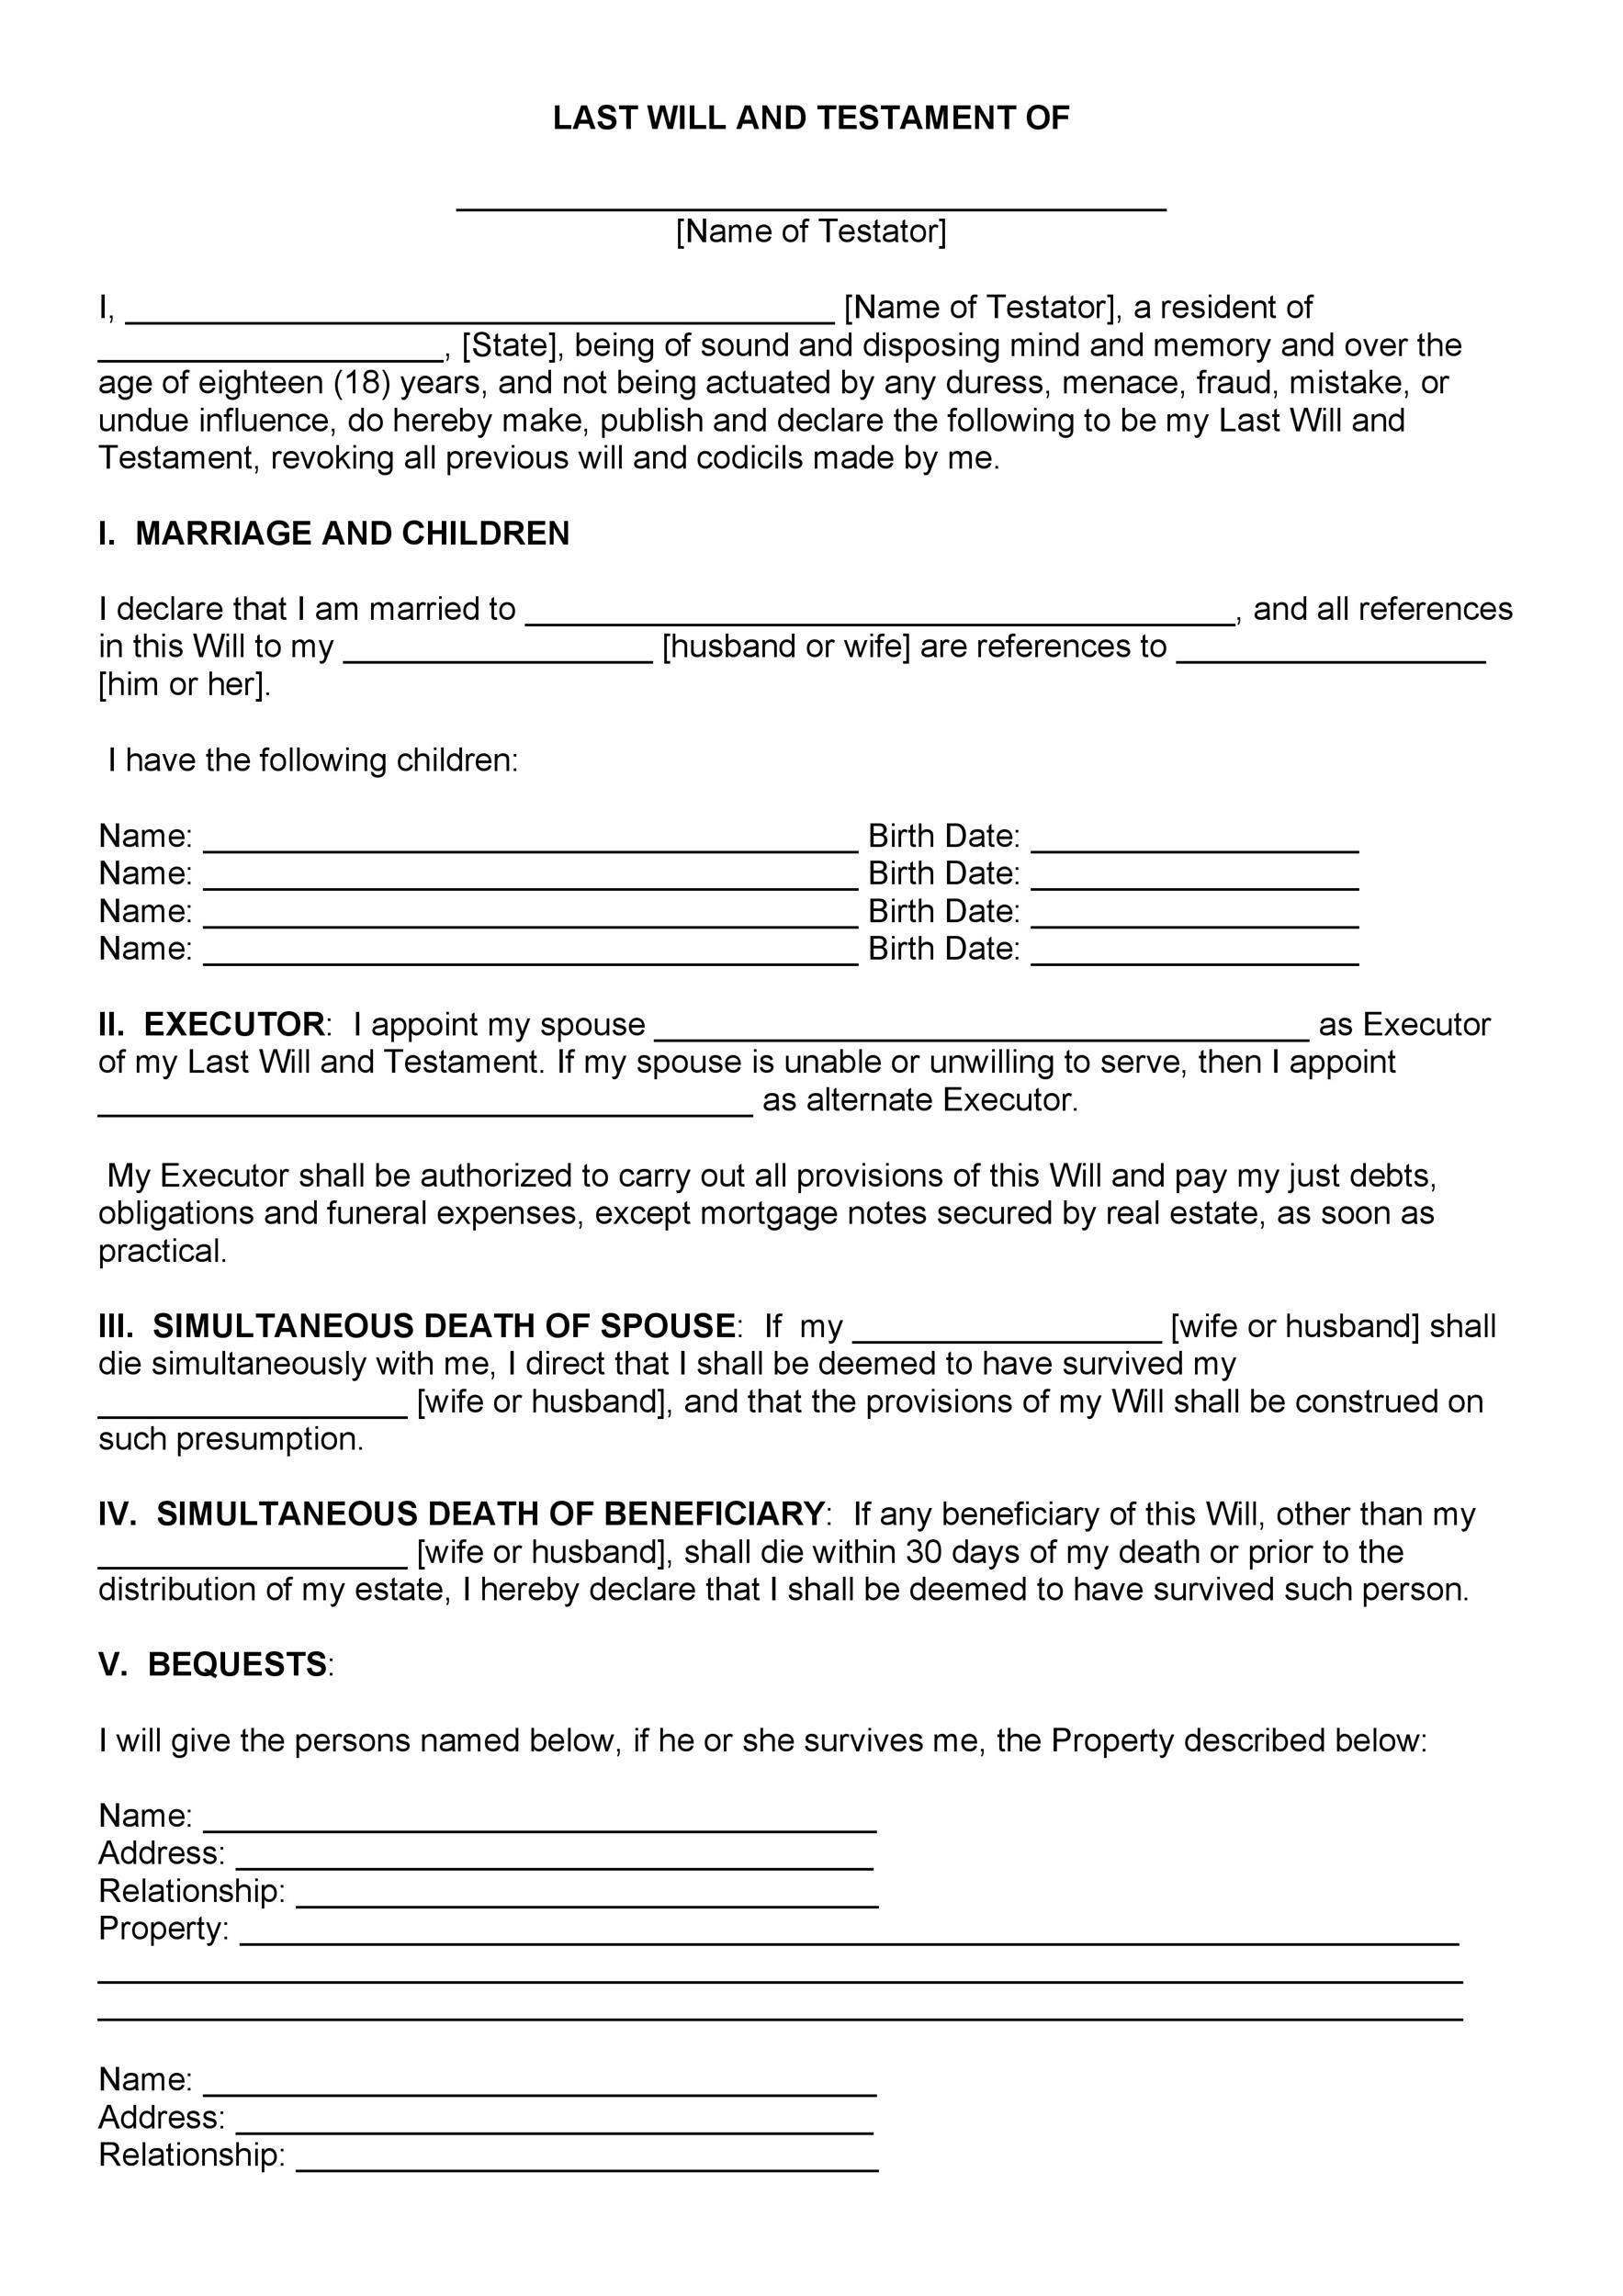 Roommate Agreement Form. Roommate Agreement Template 11 Best 10+